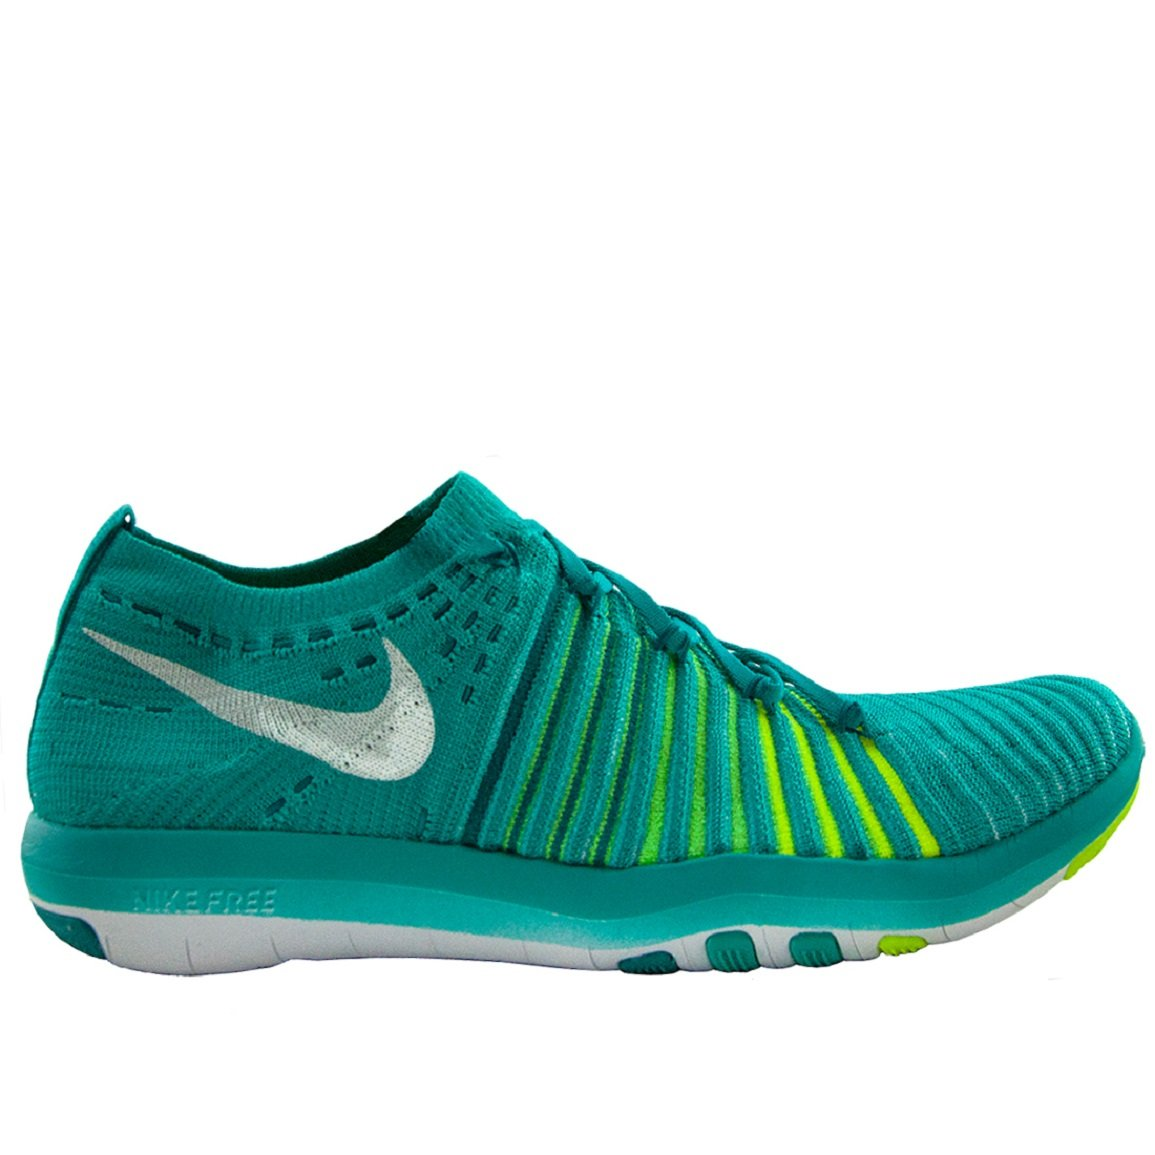 Nike Womens Free Transform Flyknit Shoes Clear Jade/Vlgn 301 Size 10.5